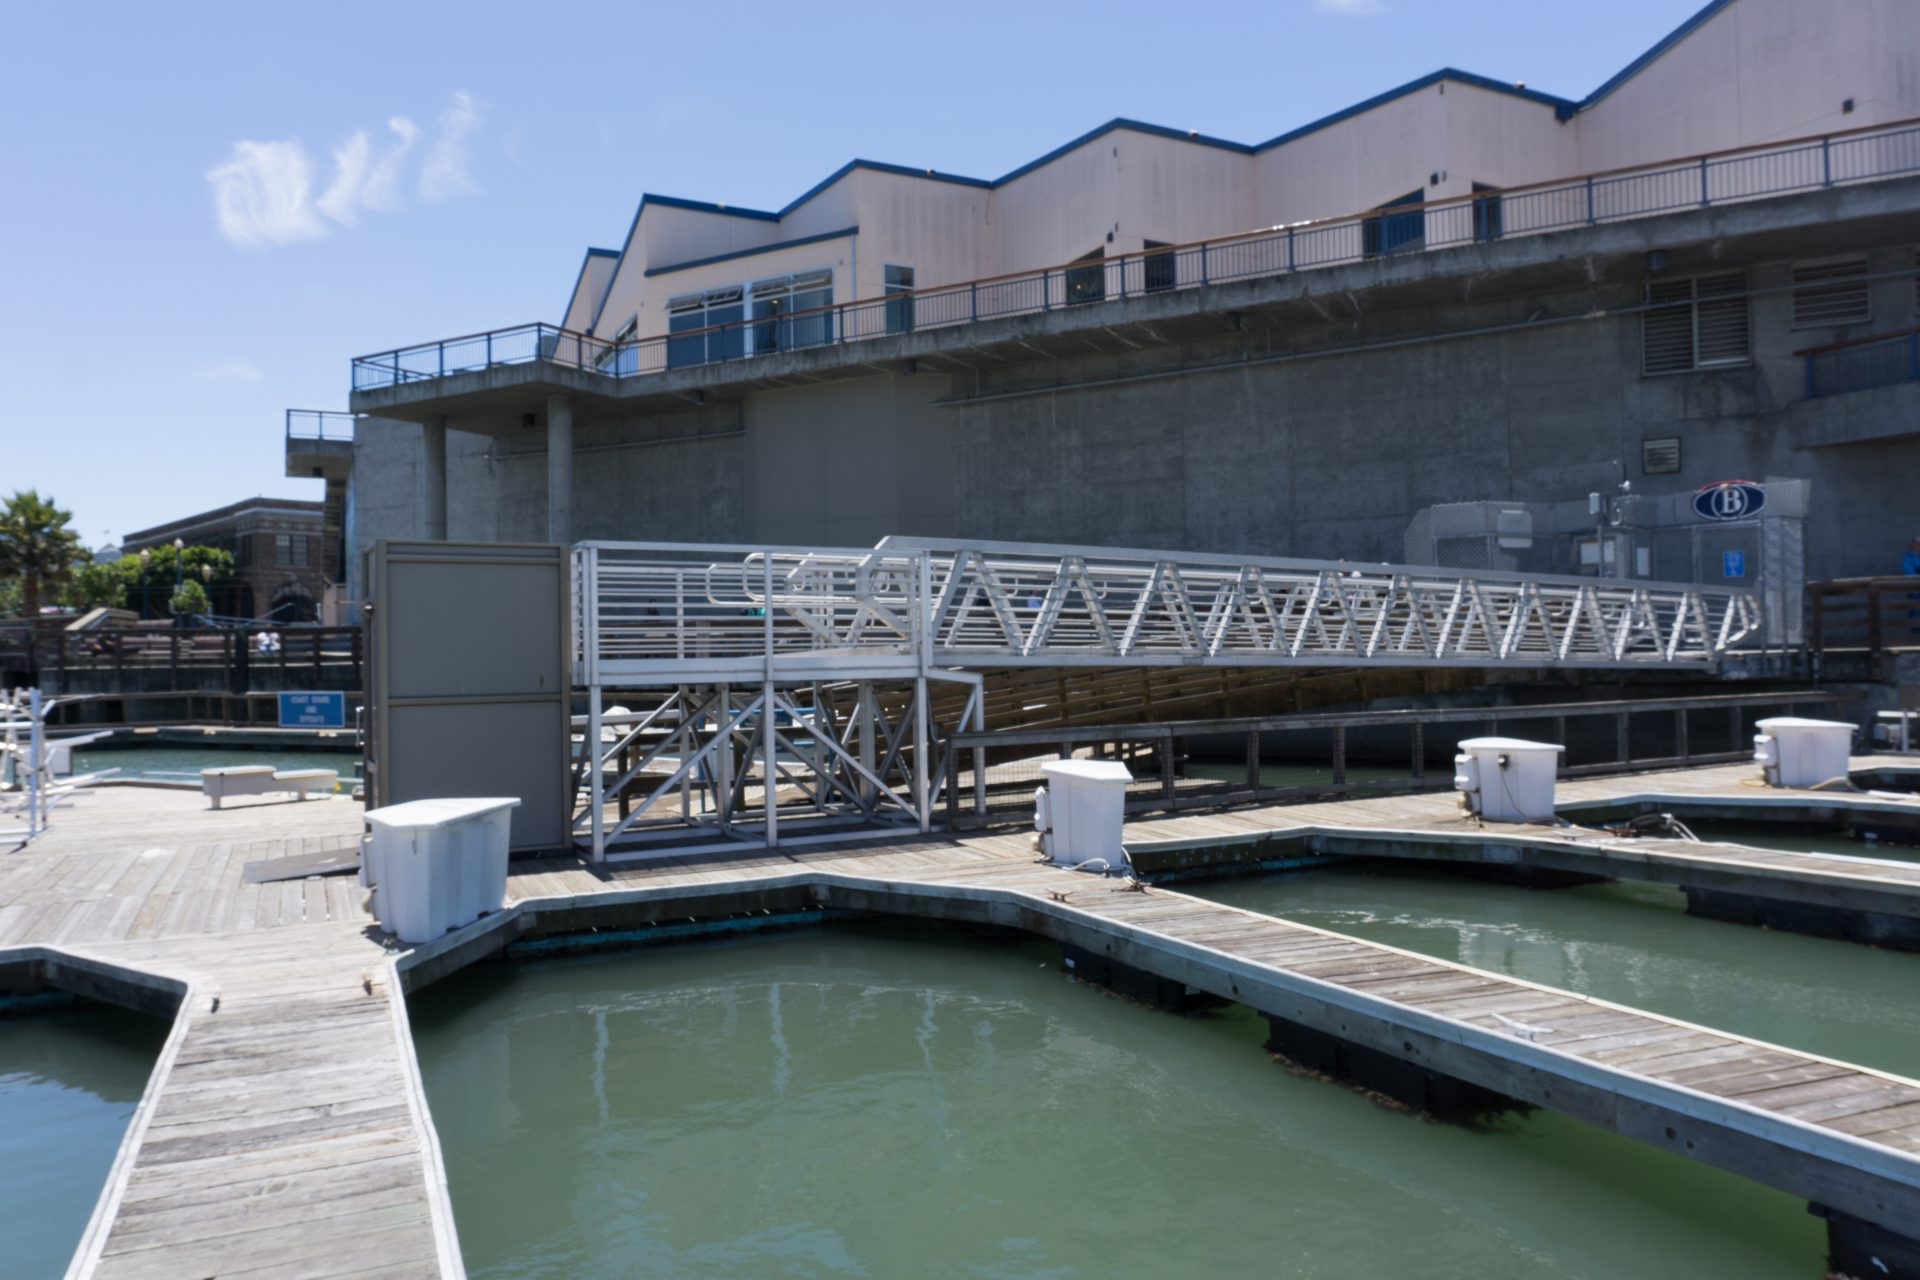 Array of wooden docks with ramp and wheelchair lift in center